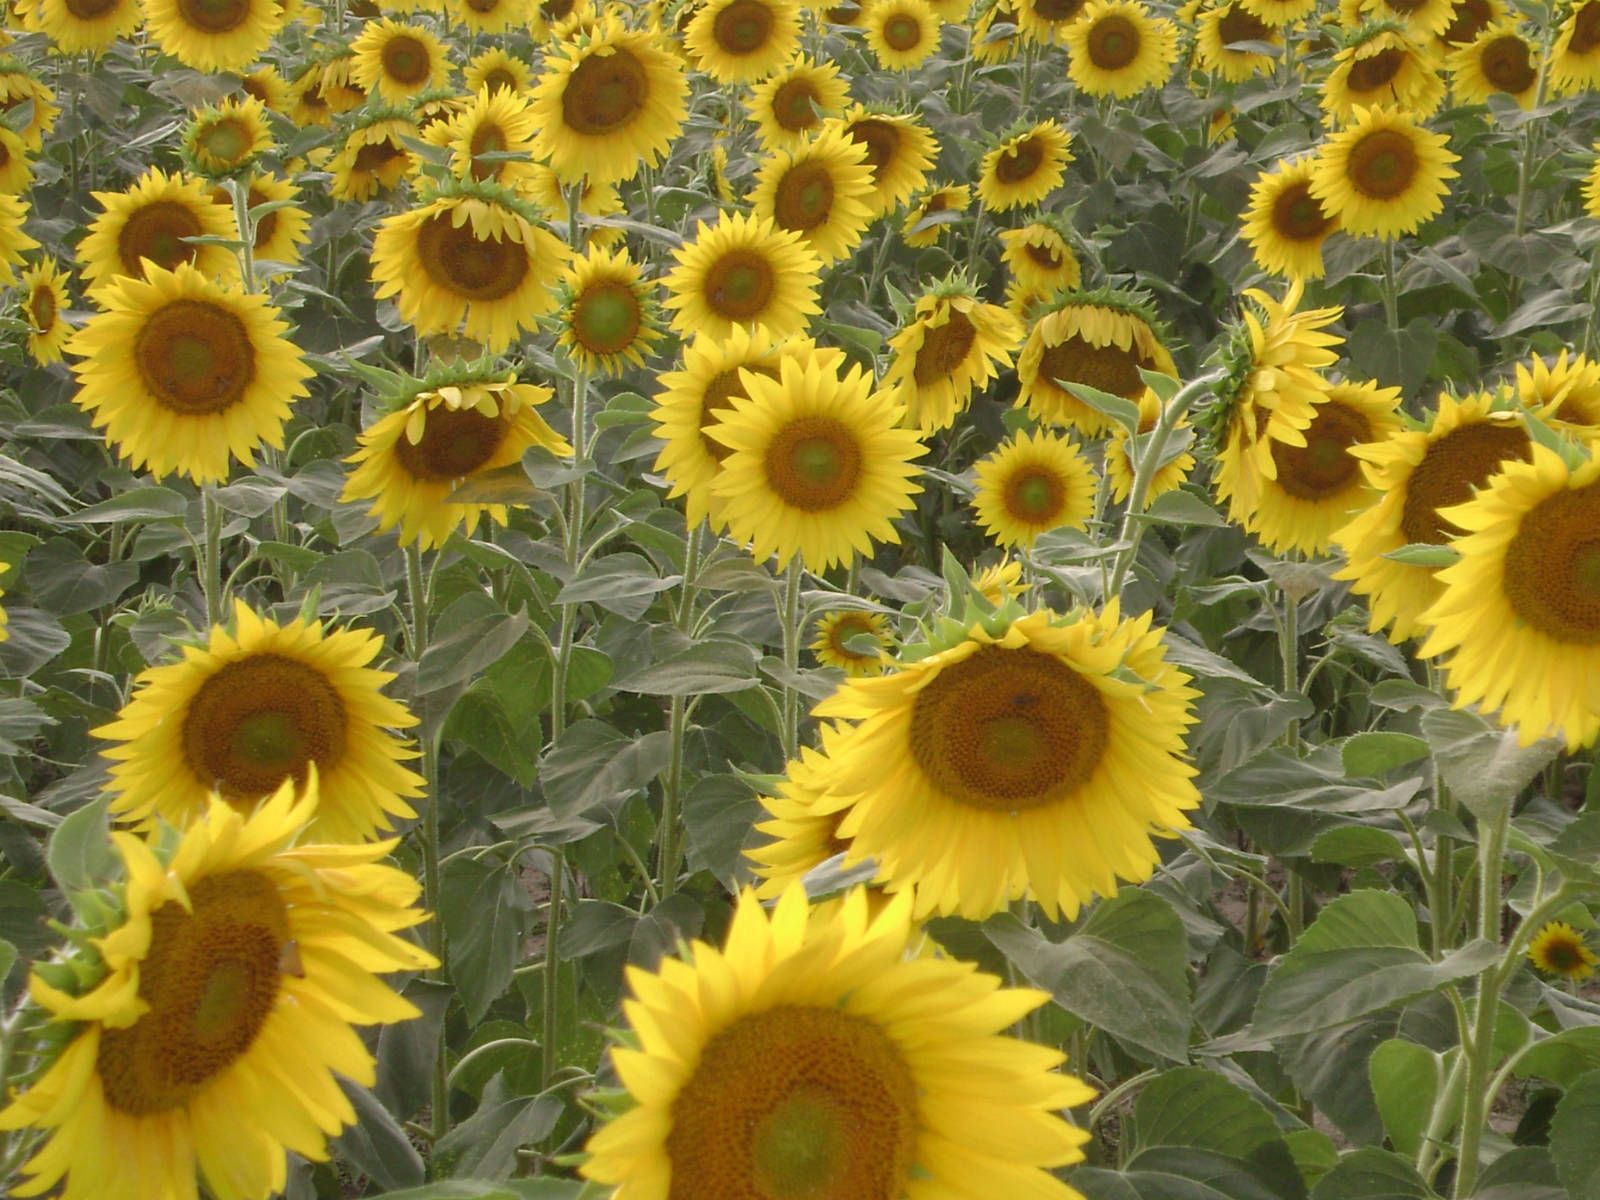 Helianthus Annuus Sunflower World Of Flowering Plants Bee Friendly Flowers Planting Sunflowers Planting Flowers